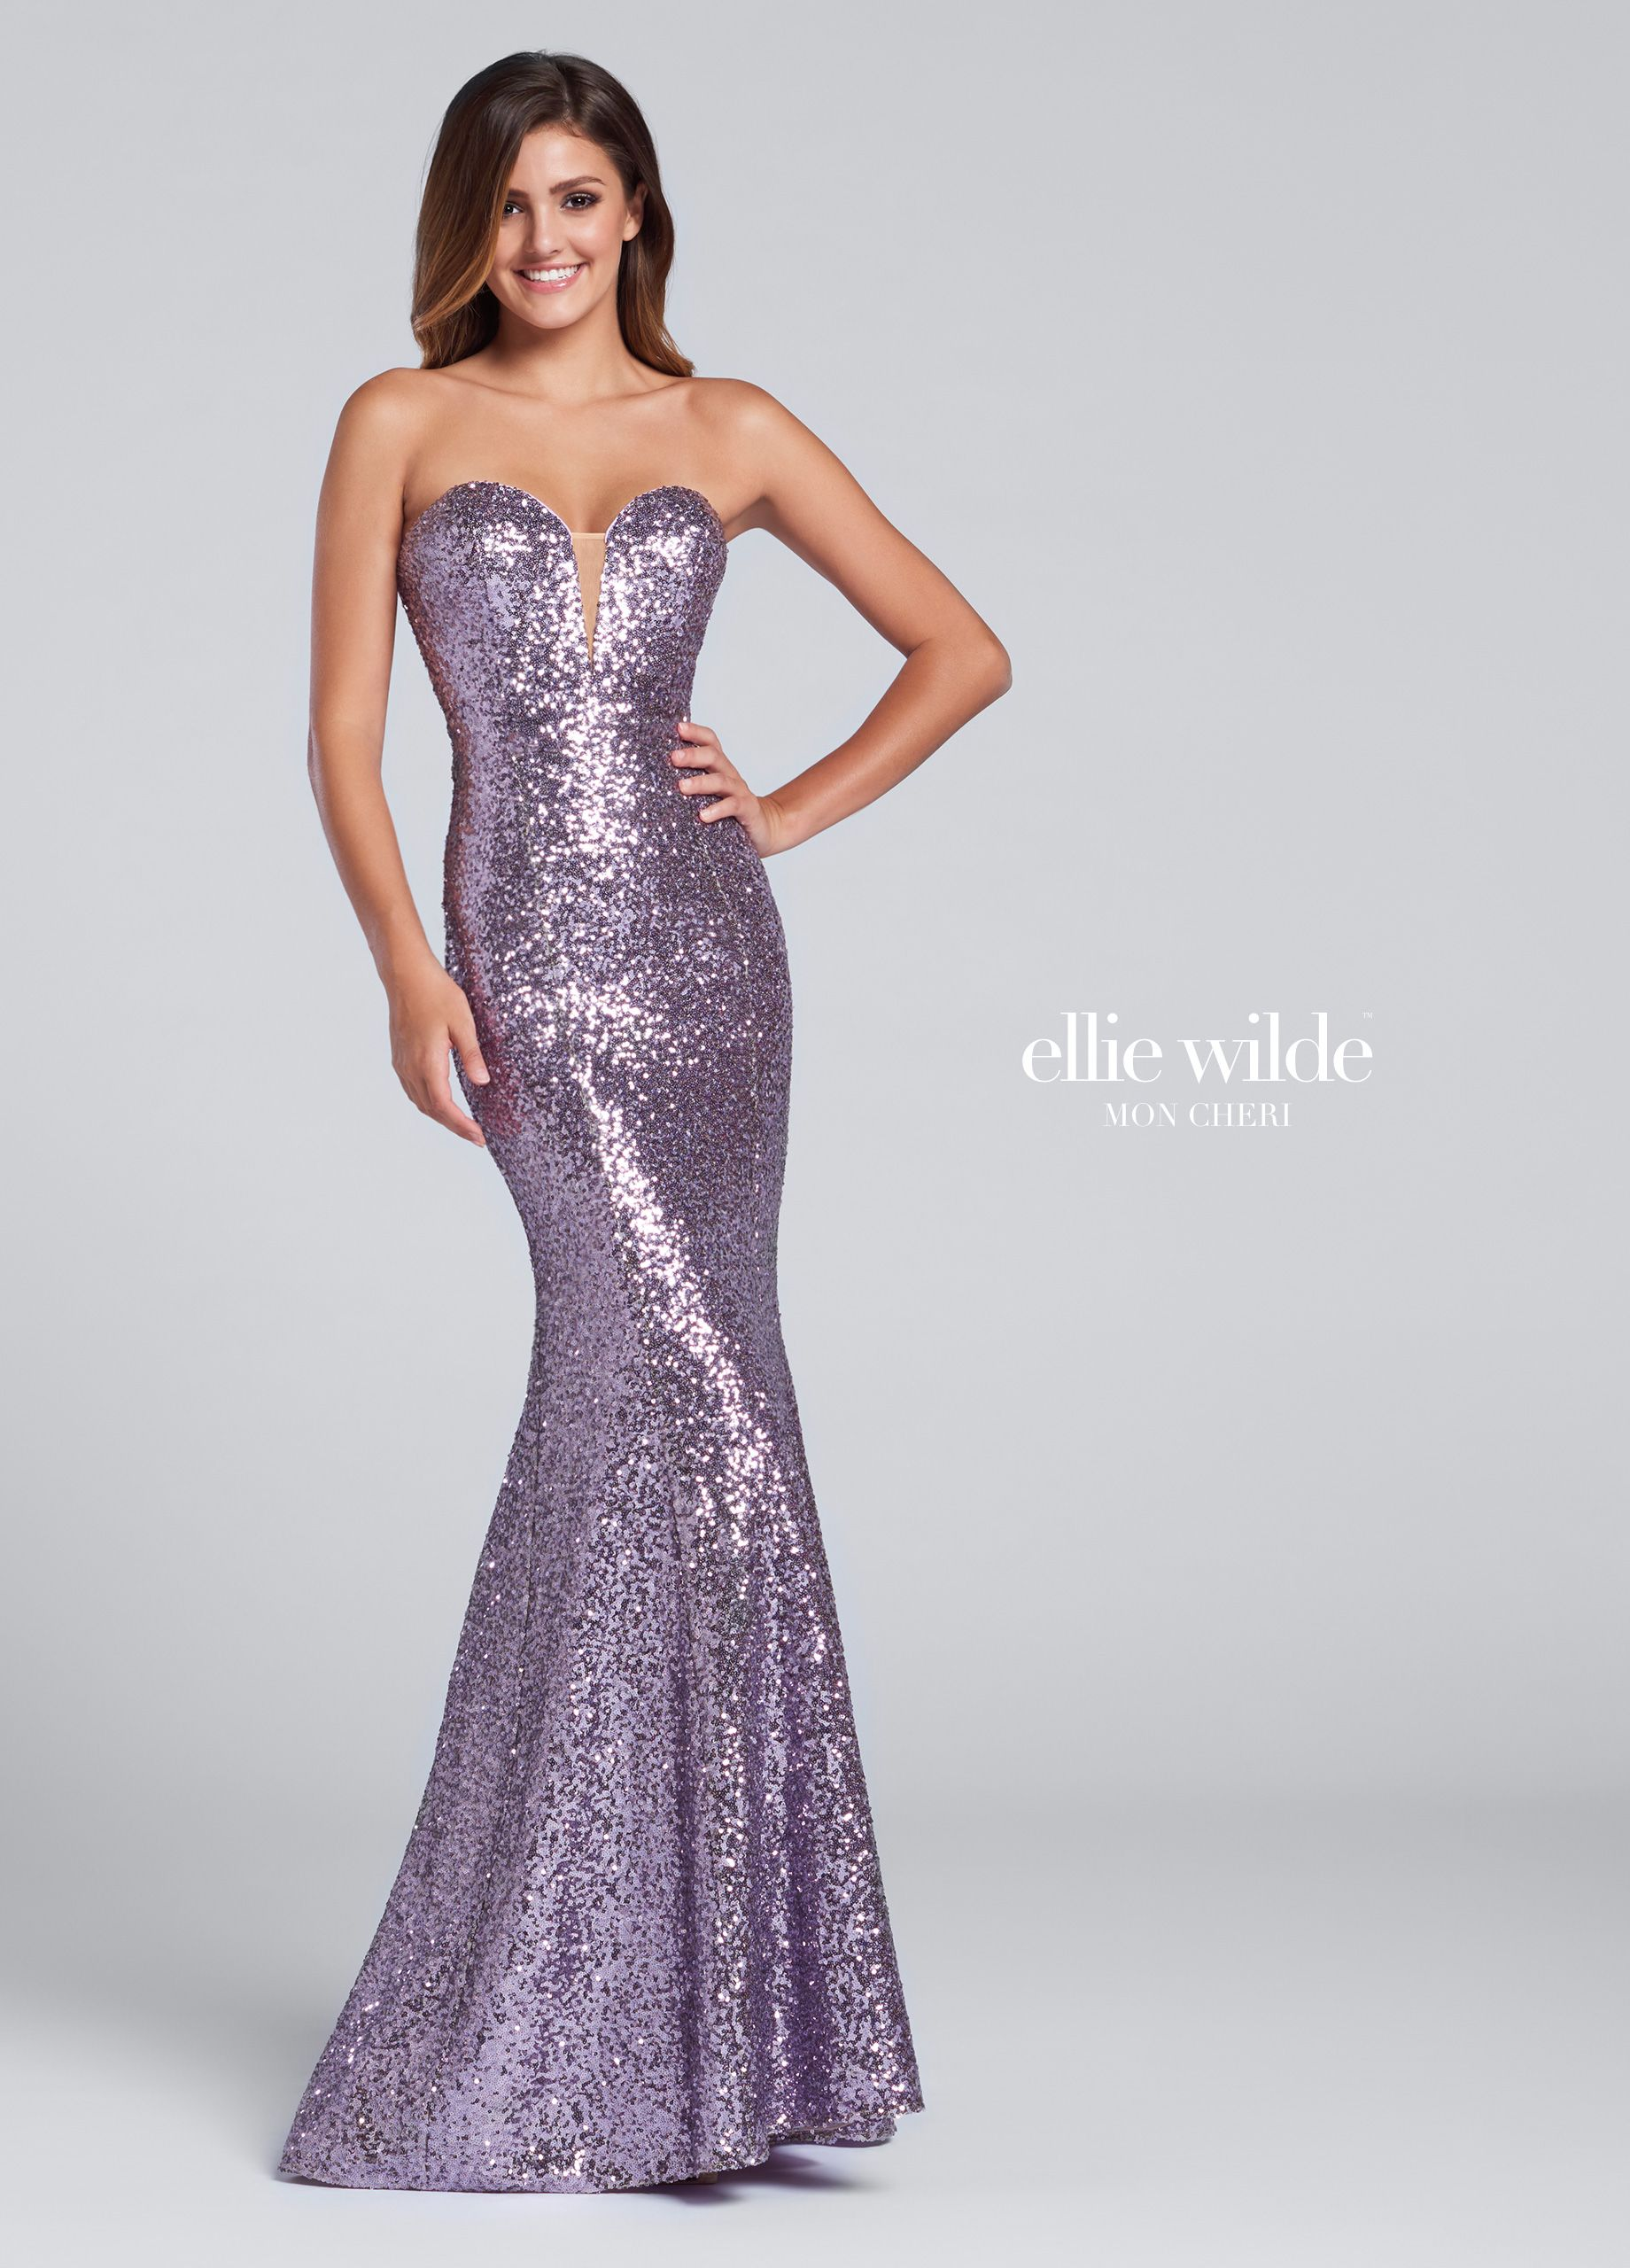 Ellie Wilde EW117033 - Strapless sequin fit and flare gown, deep plunging sweetheart neckline with illusion modesty panel, slight train. Removable straps included.  NEW Colors: Iris, Mint, Rose Gold, Wine